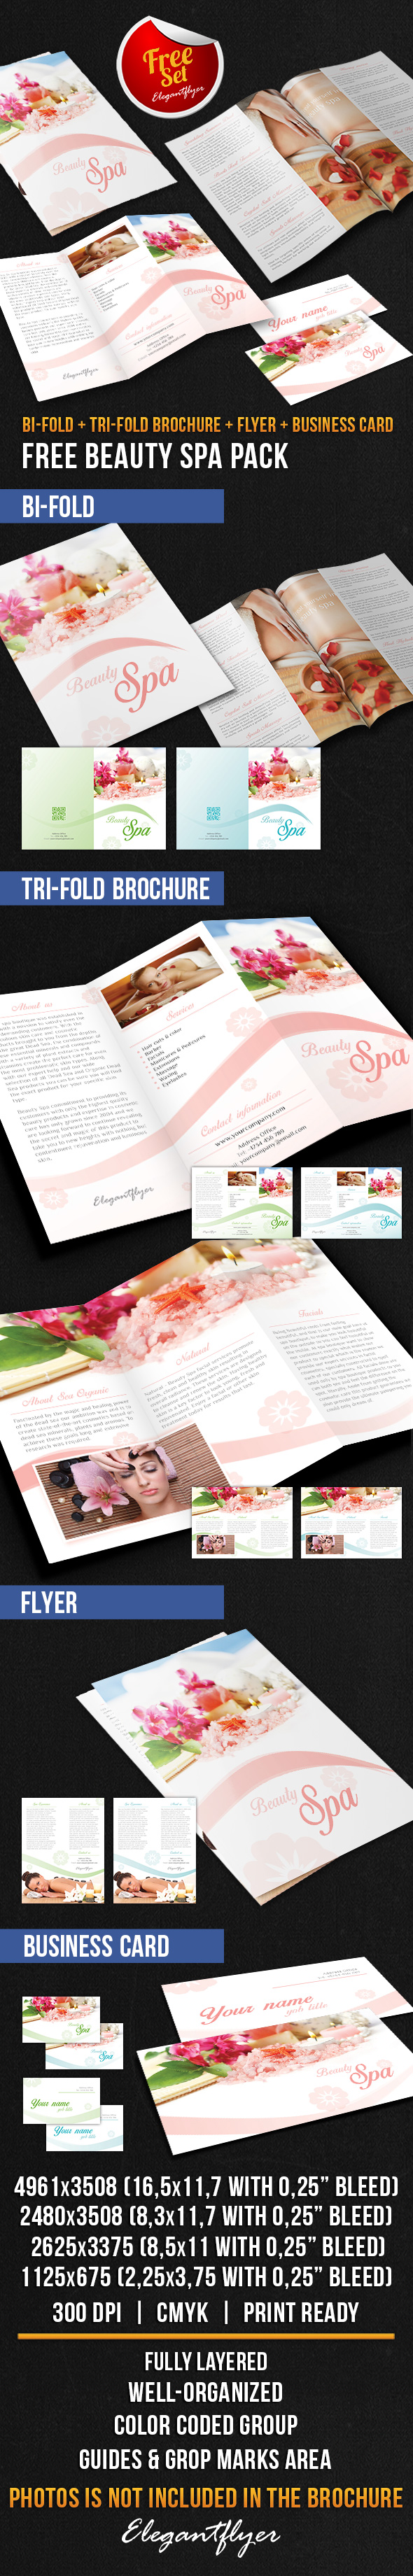 25 best free psd brochure templates free psd templates for Spa brochure templates free